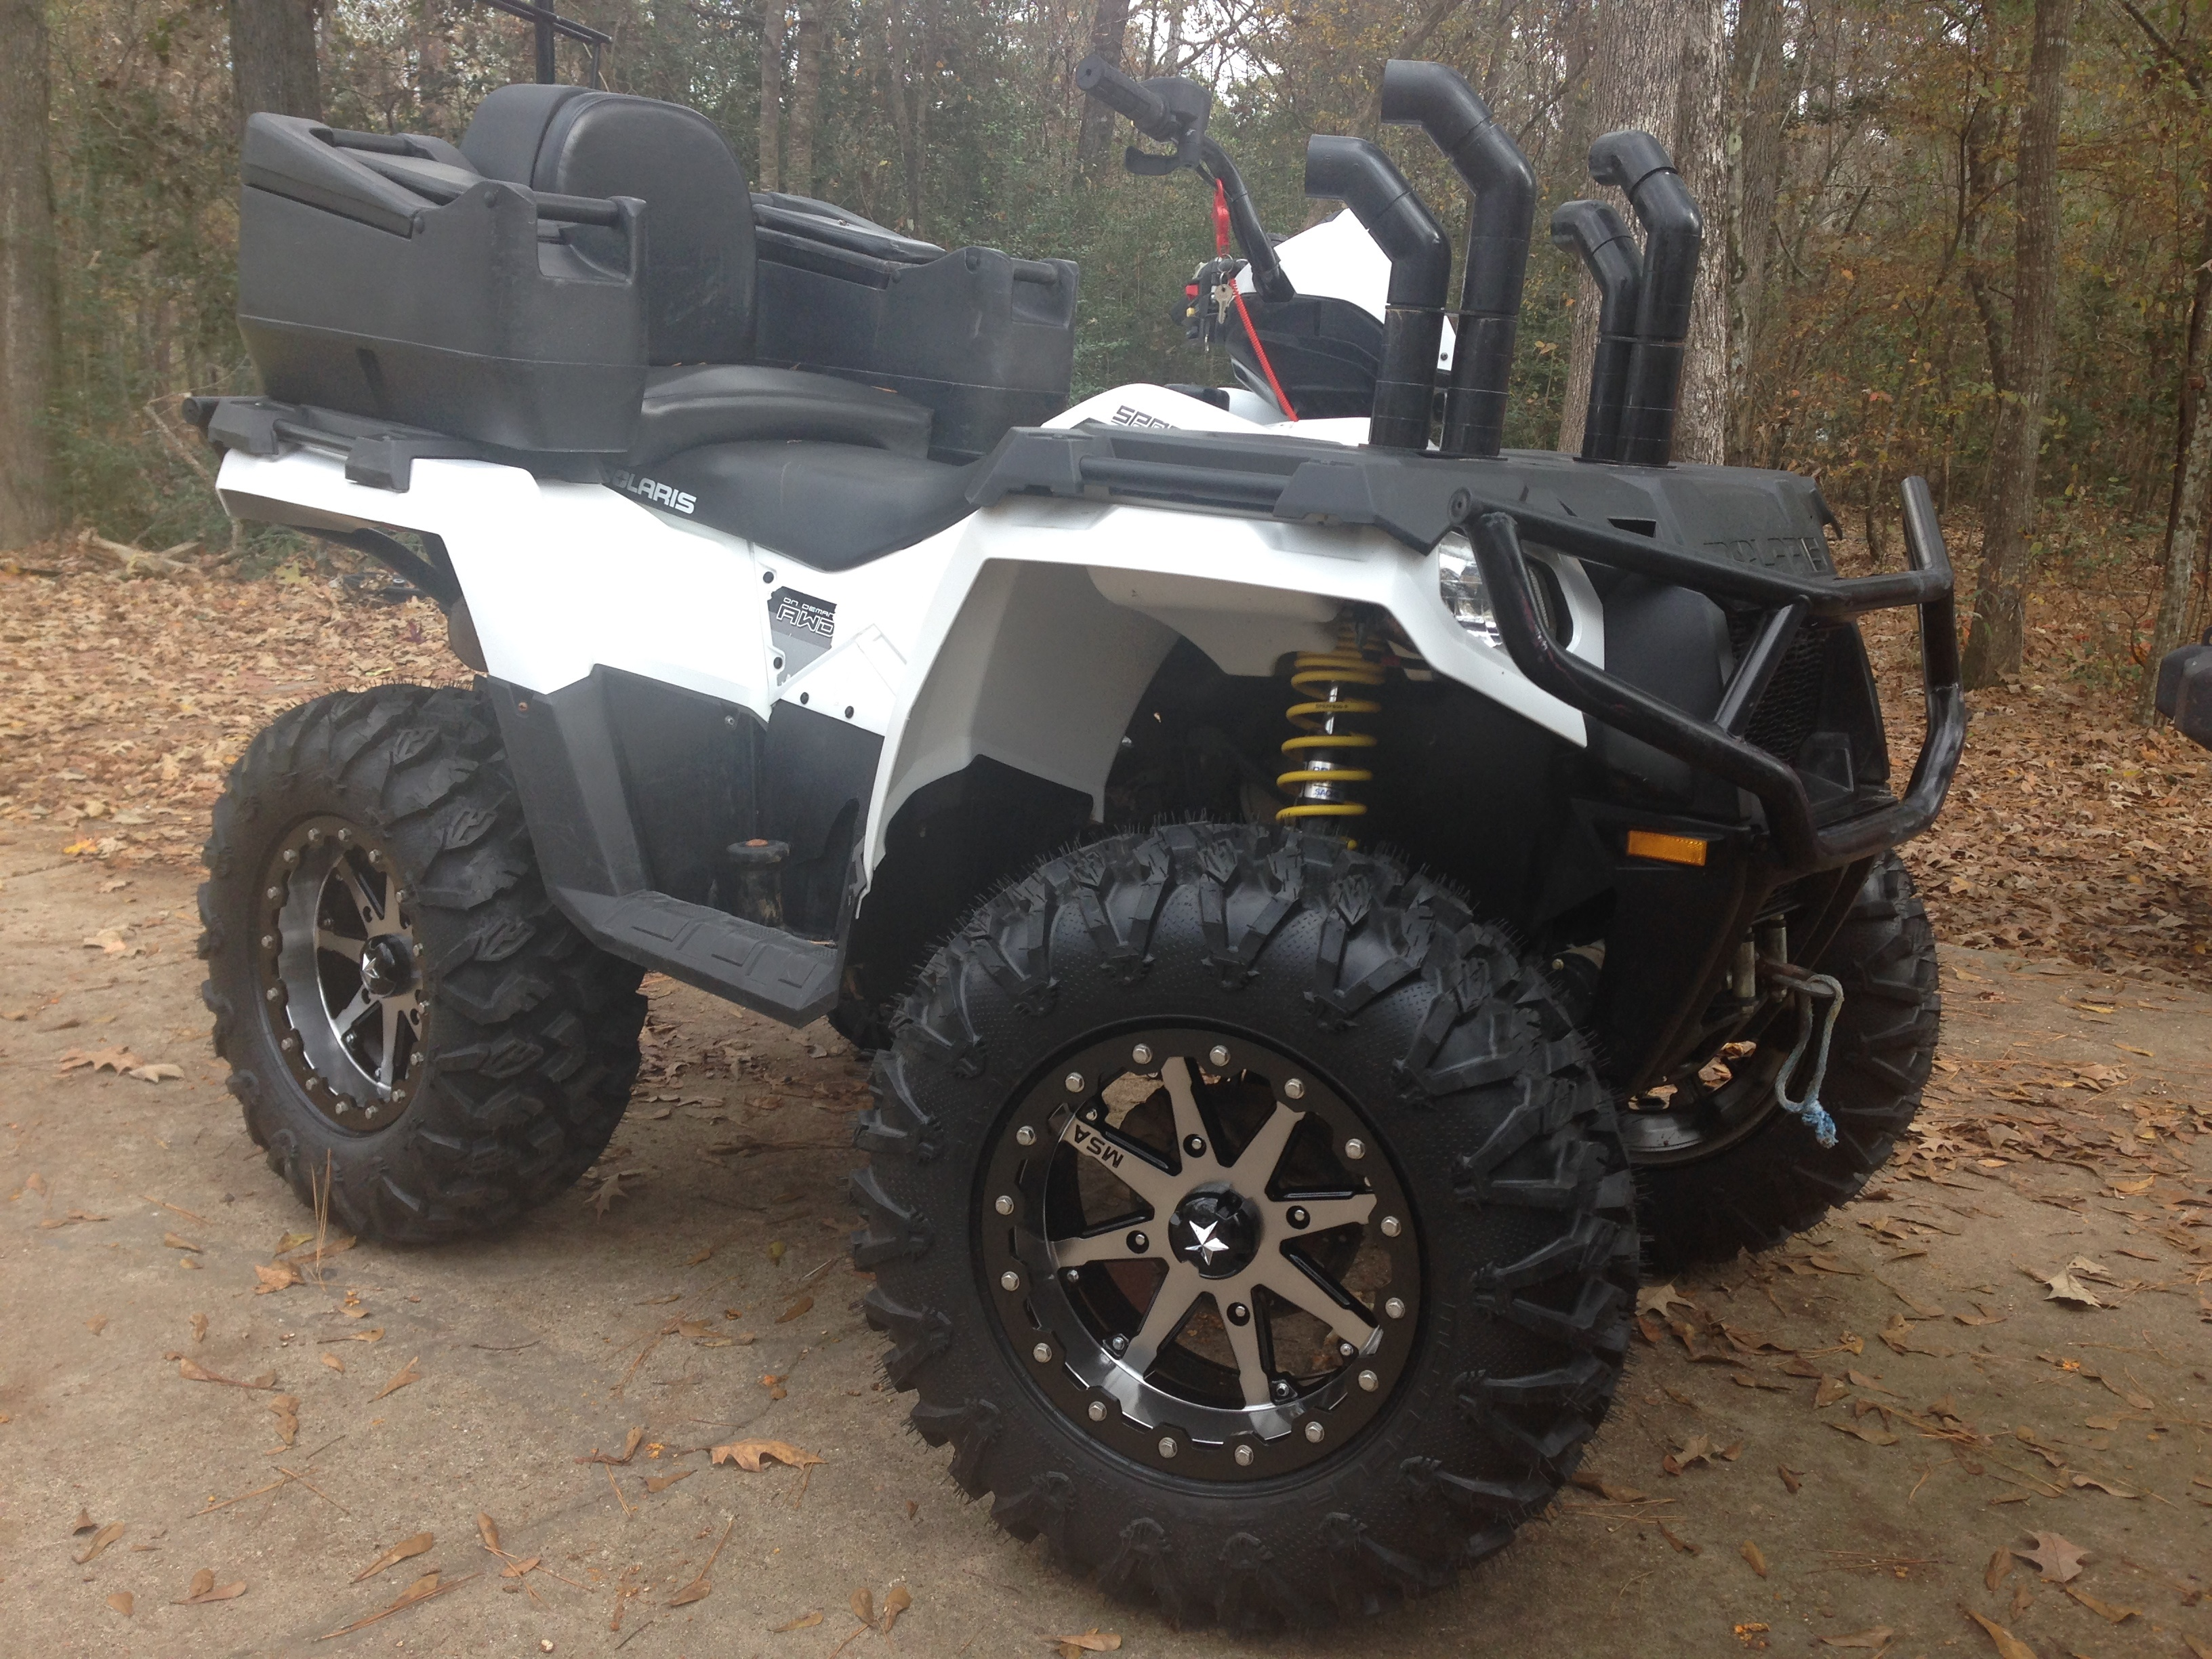 2014 sportsman 570 snorkel kit page 5 polaris atv forum. Black Bedroom Furniture Sets. Home Design Ideas